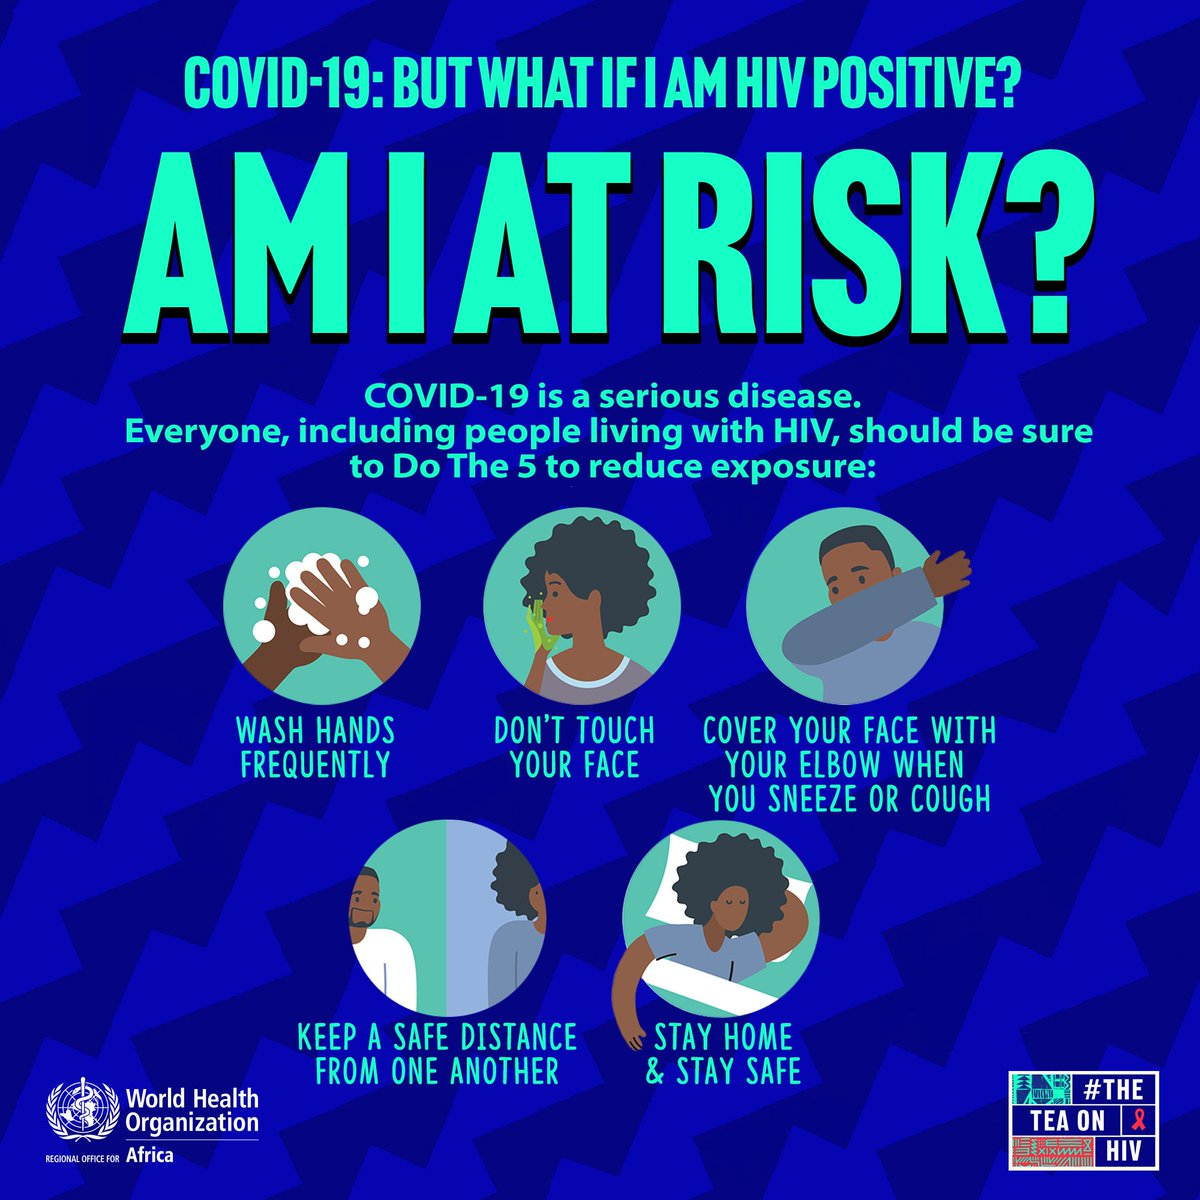 Q&A: The vast majority of people living with #HIV live in #Africa, are they at a greater risk from #COVID19?  ✅It is unknown if #HIV increases the risk of COVID-19, but it's important to take precautions to reduce exposure to the virus. #AIDS2020Virtual  https://t.co/BiVMp4N7j3 https://t.co/hYSlXDtVP7